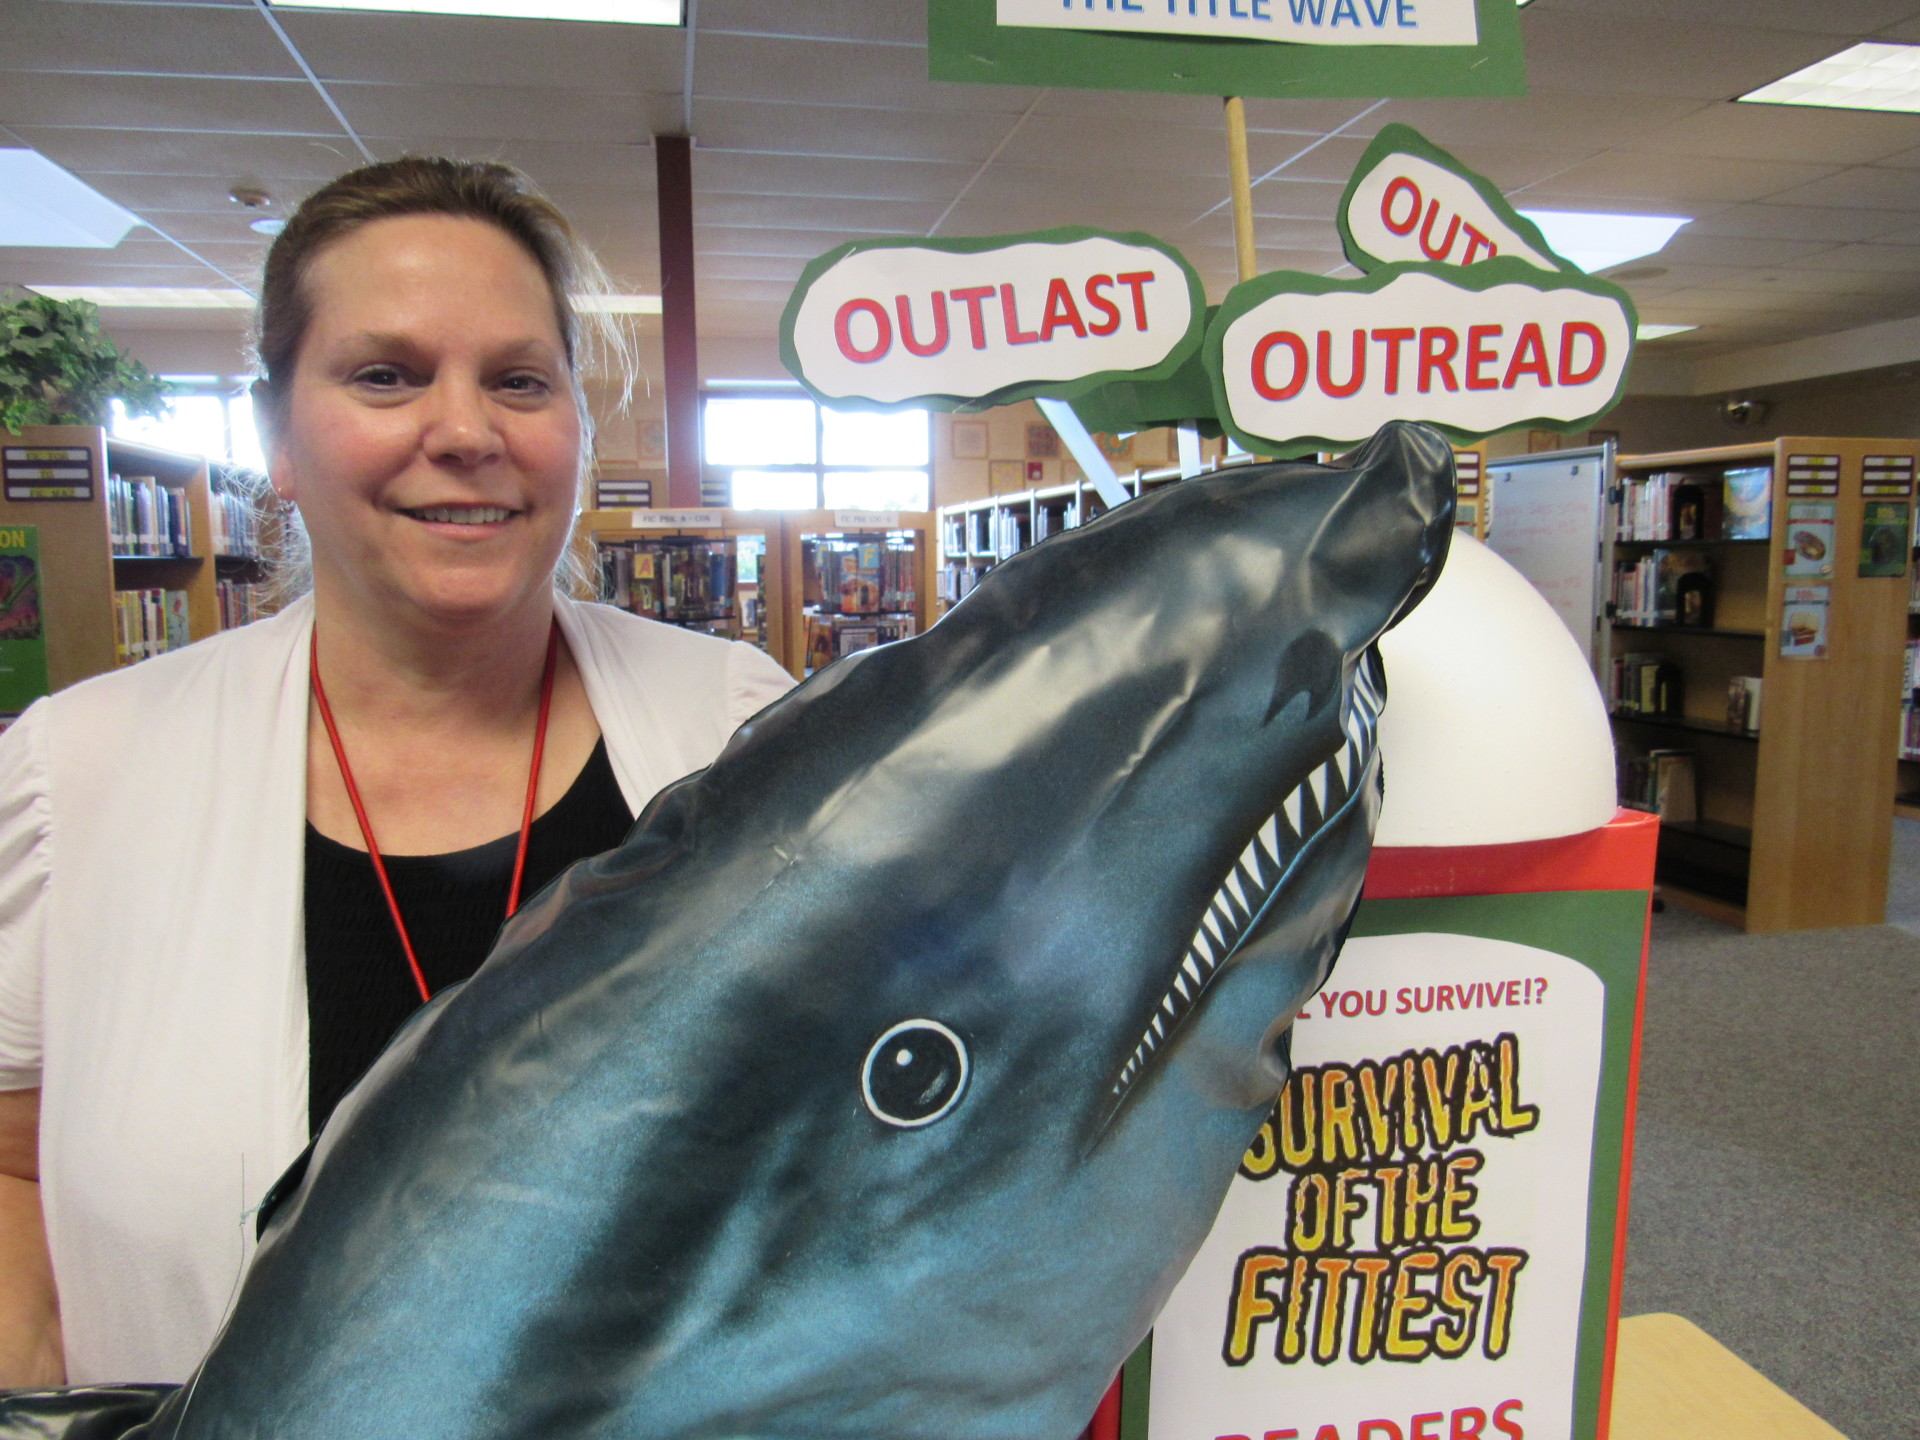 I will create interesting Library themes to promote reading. ~ Laurie Smallis